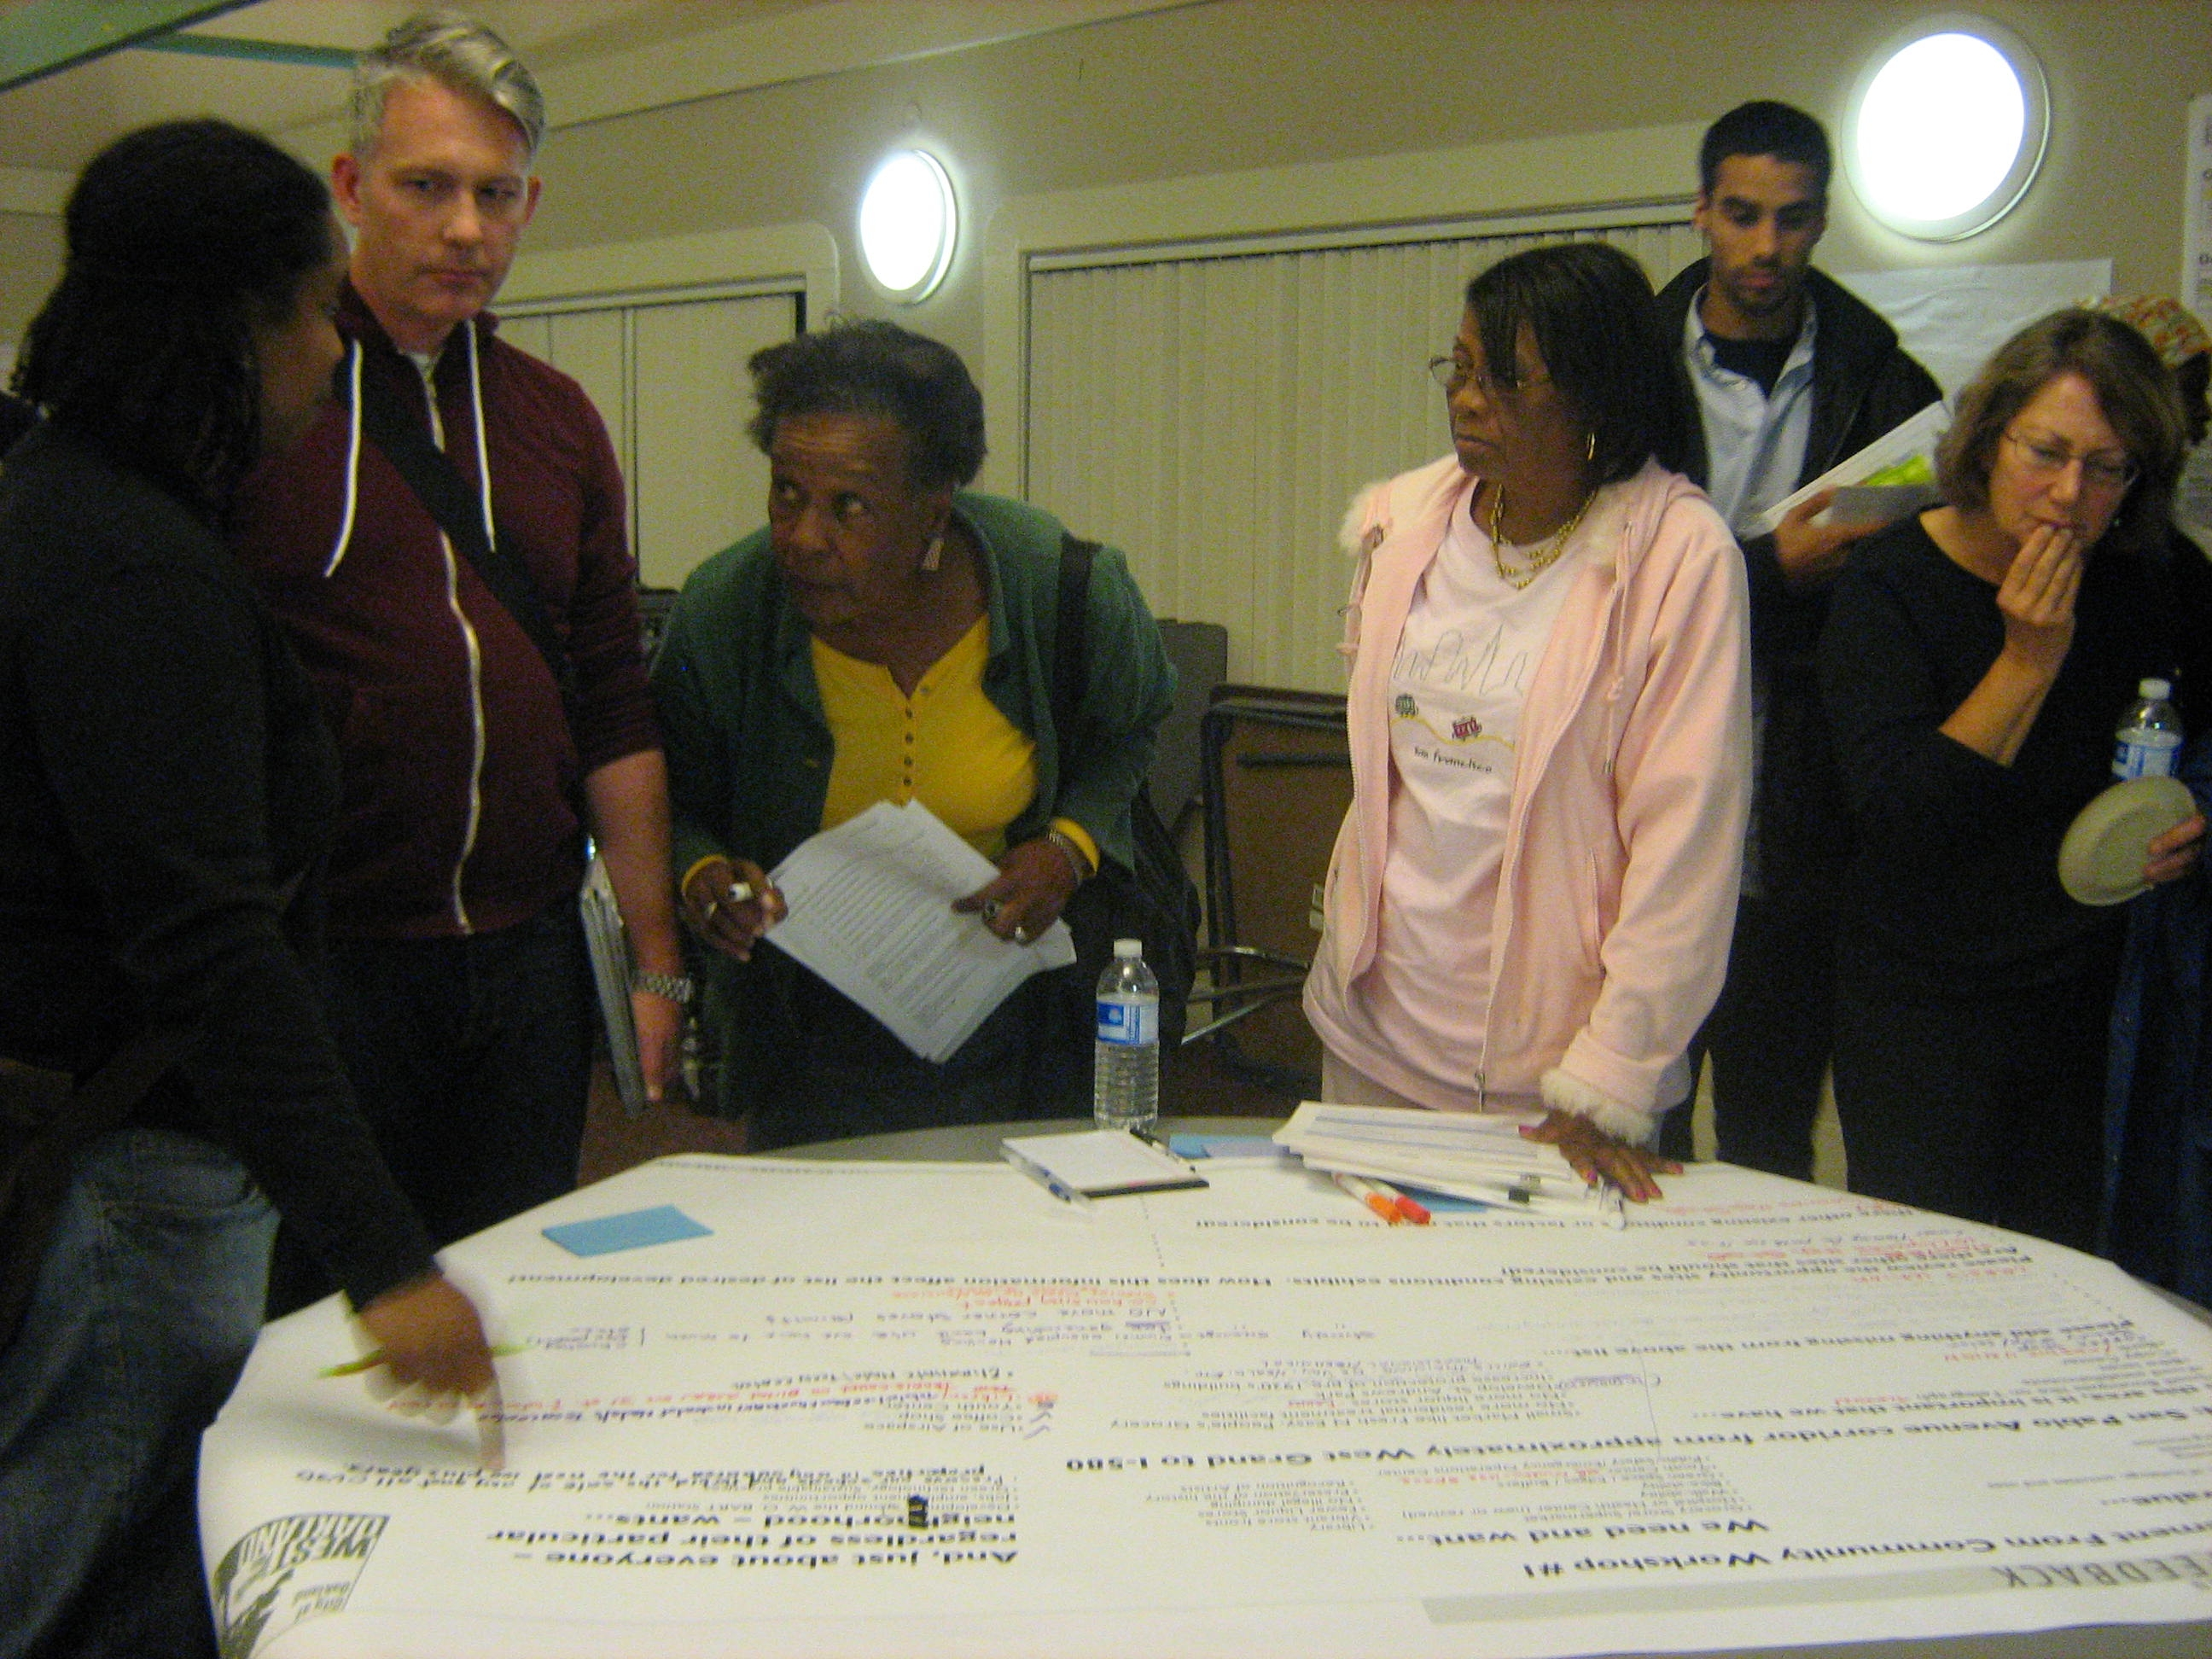 Workshop participants contribute comments on the plan